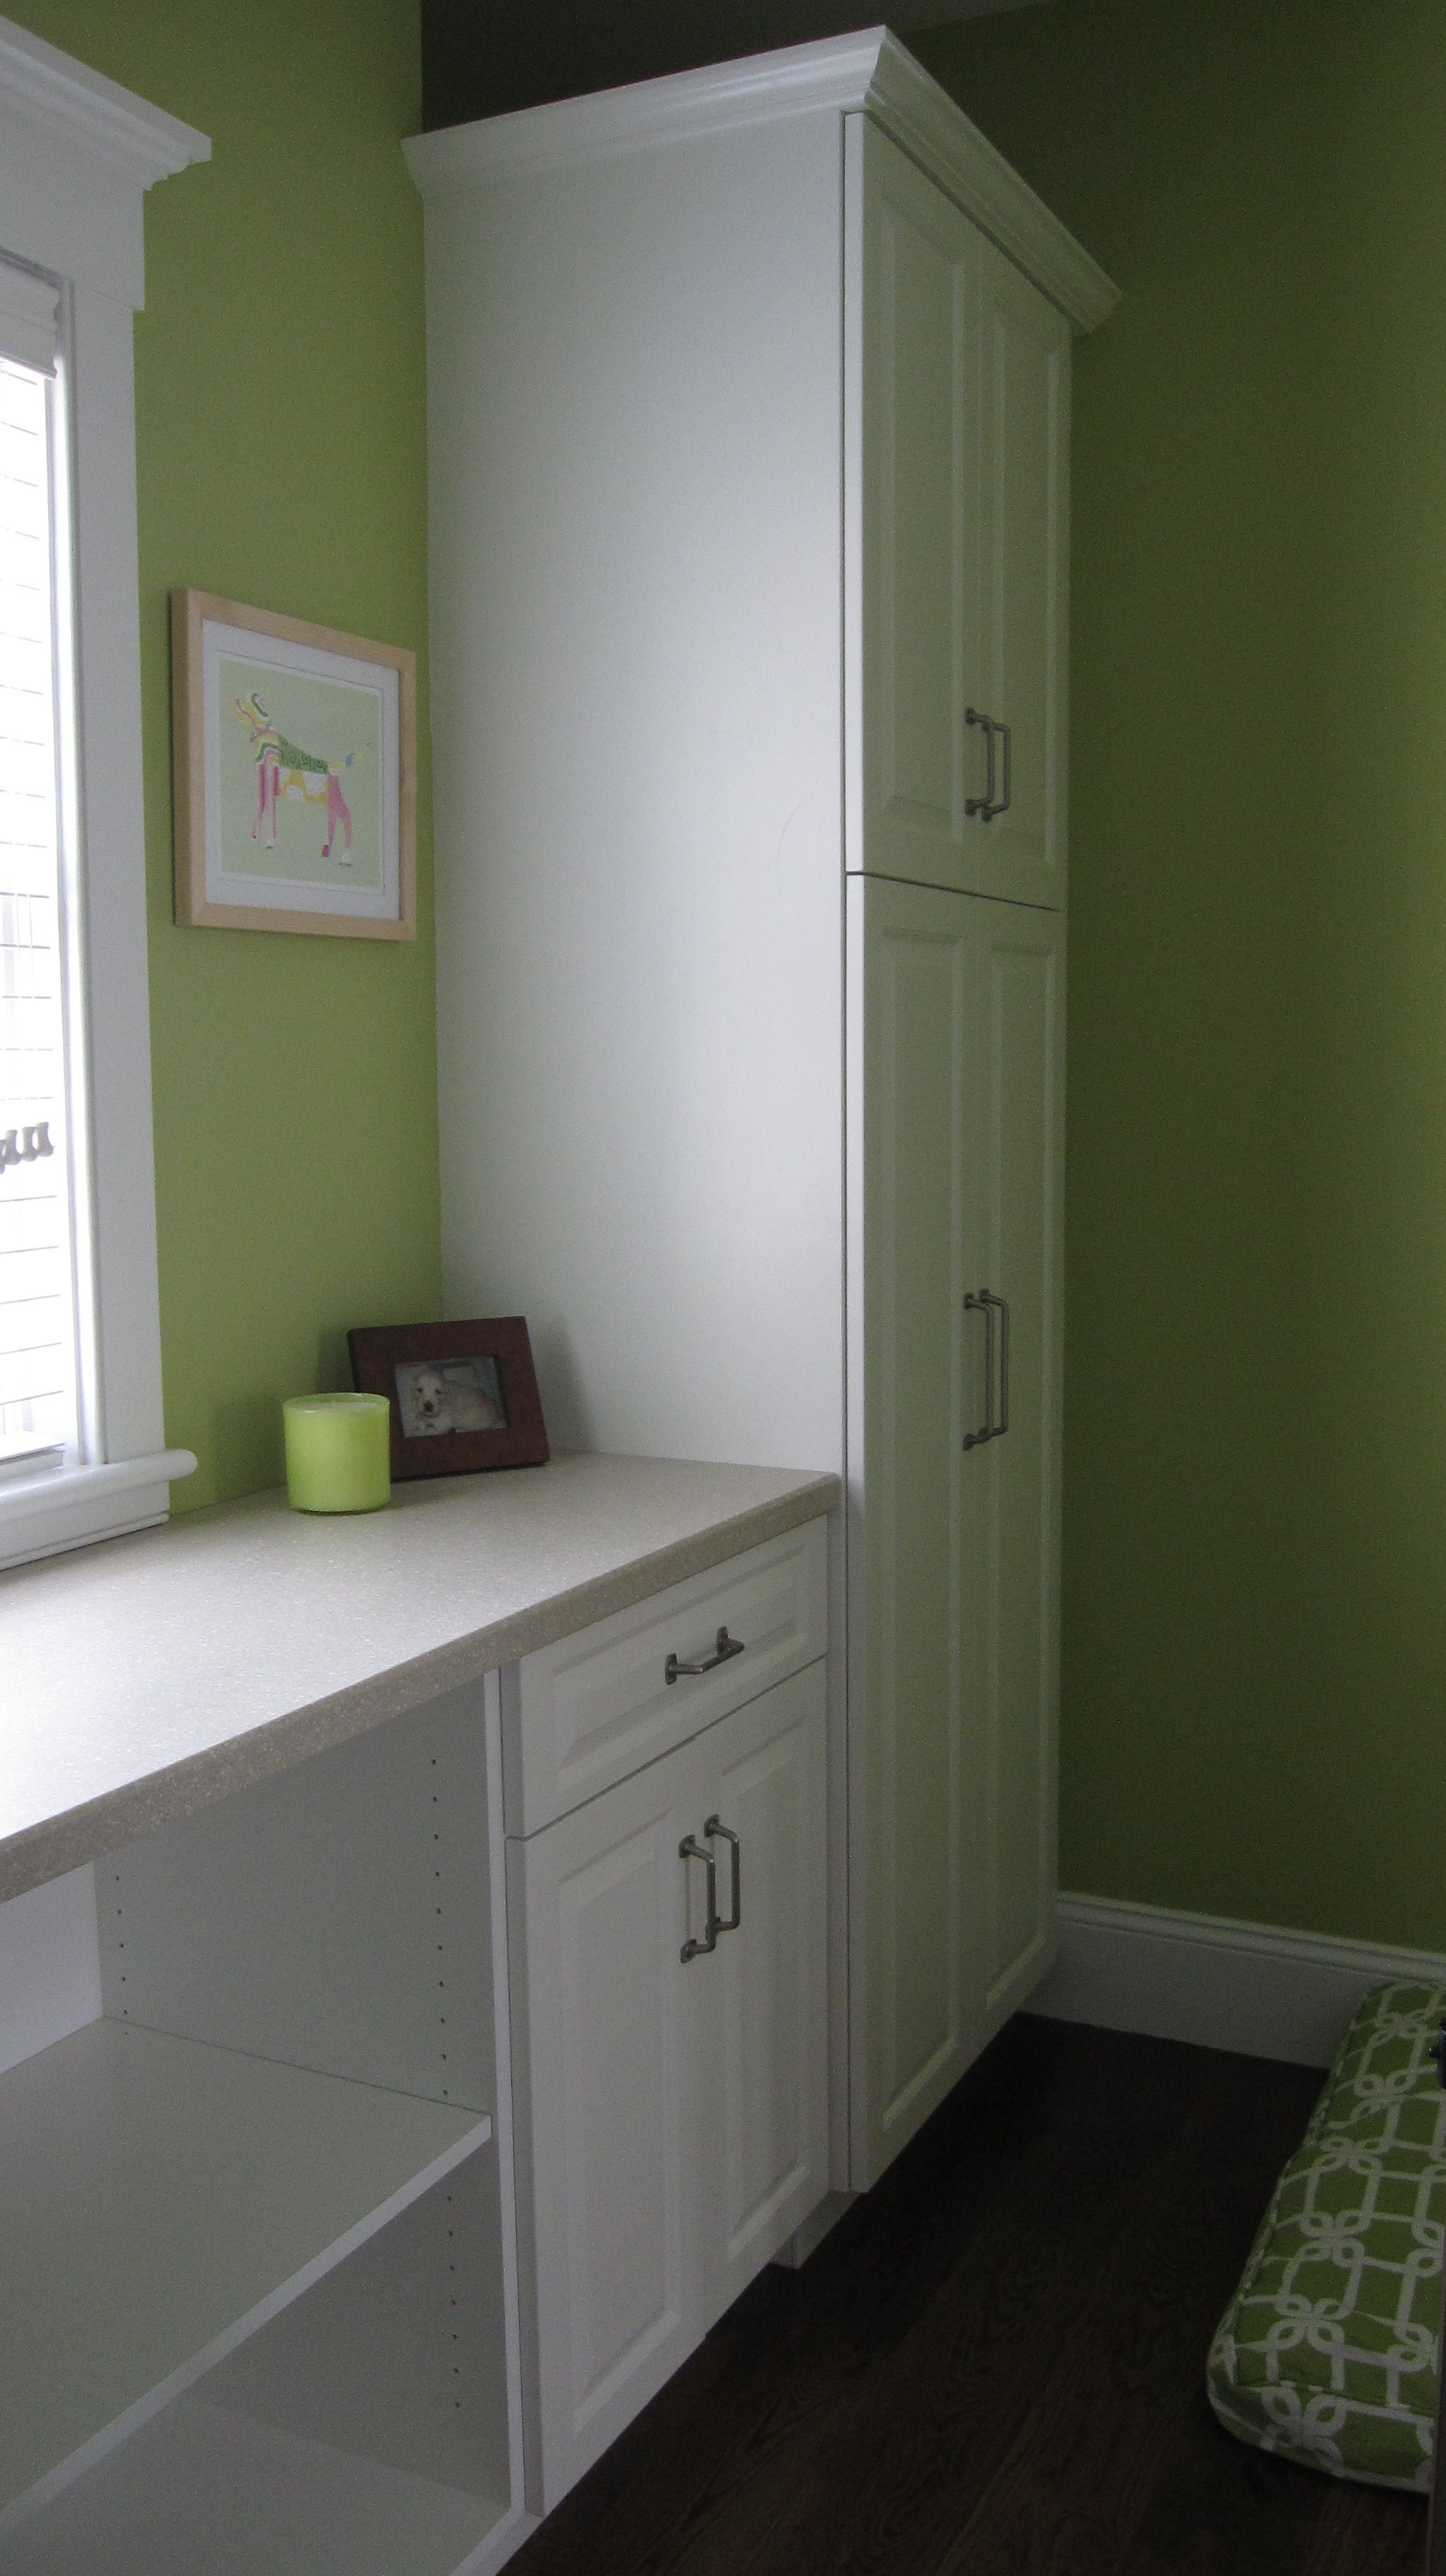 Laundry Room Built Ins   Tall Split Cabinet For Broom, Mop, Etc On